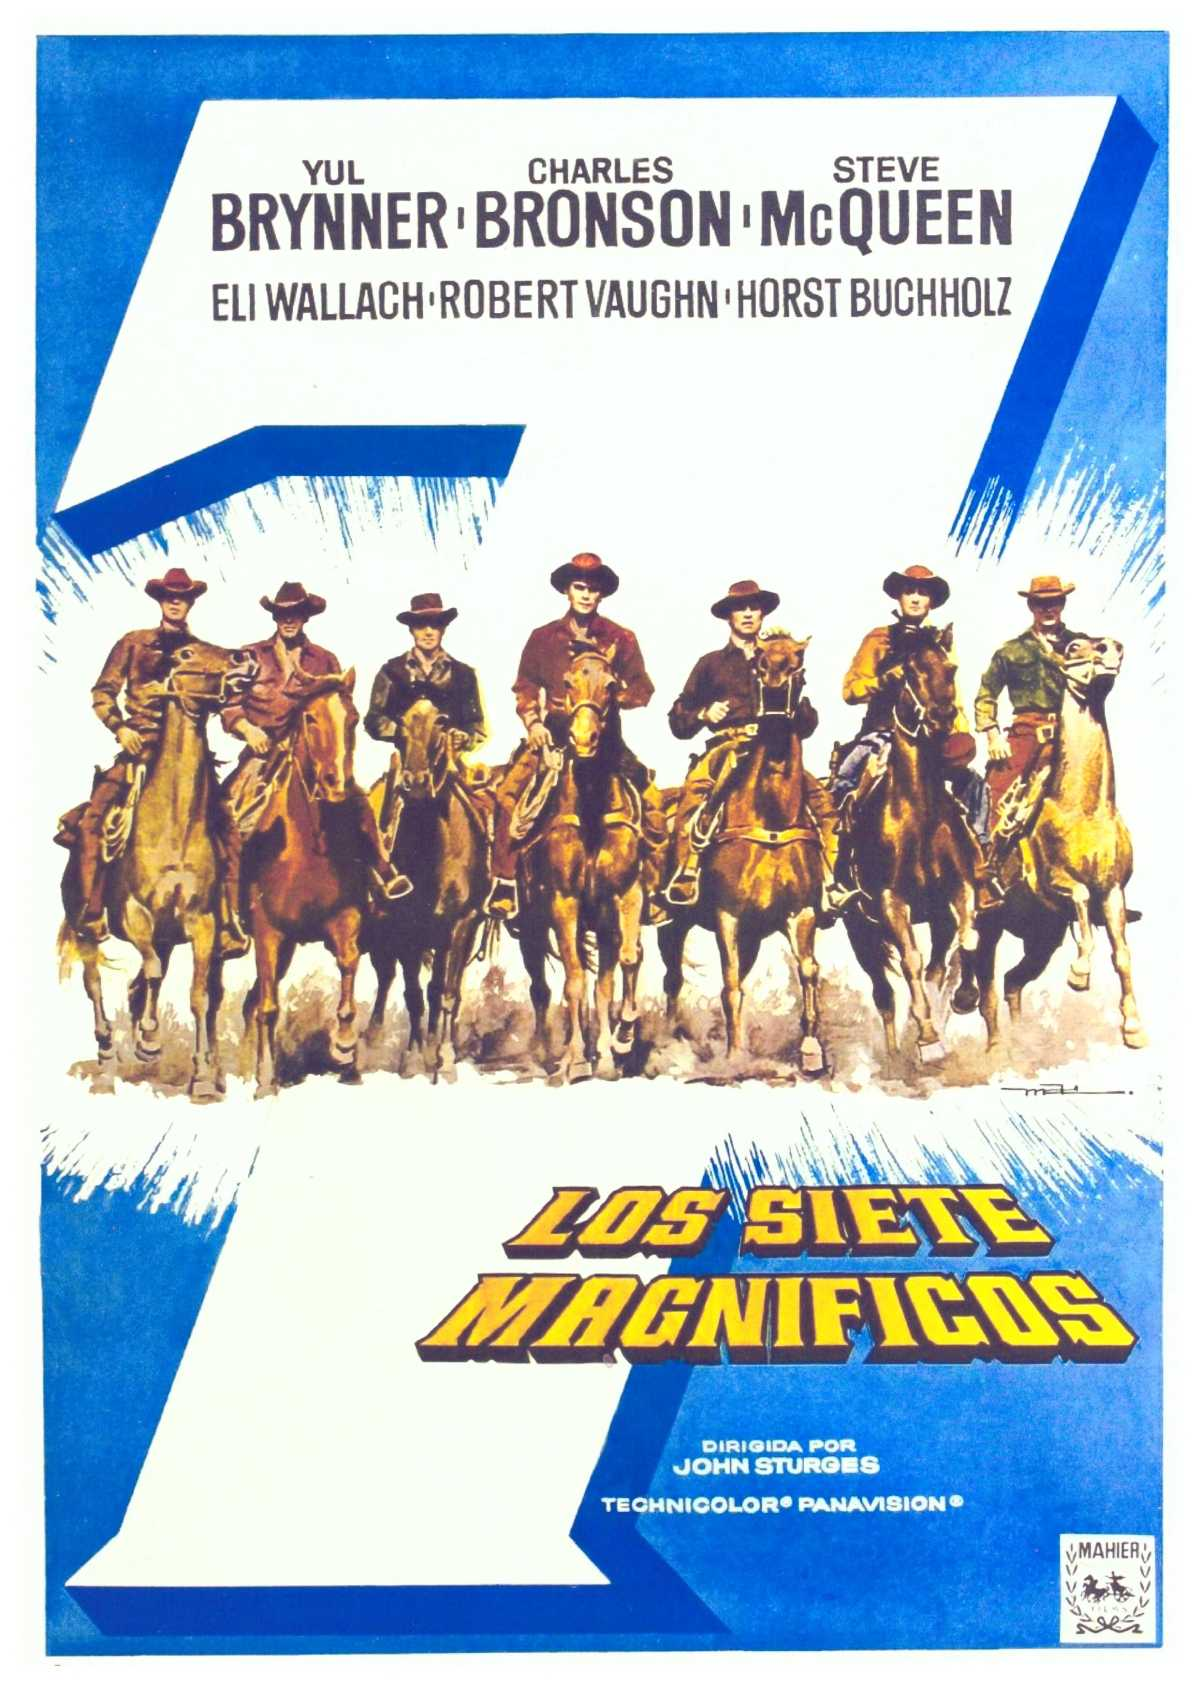 Pressbook – Selling The Magnificent Seven (1960)